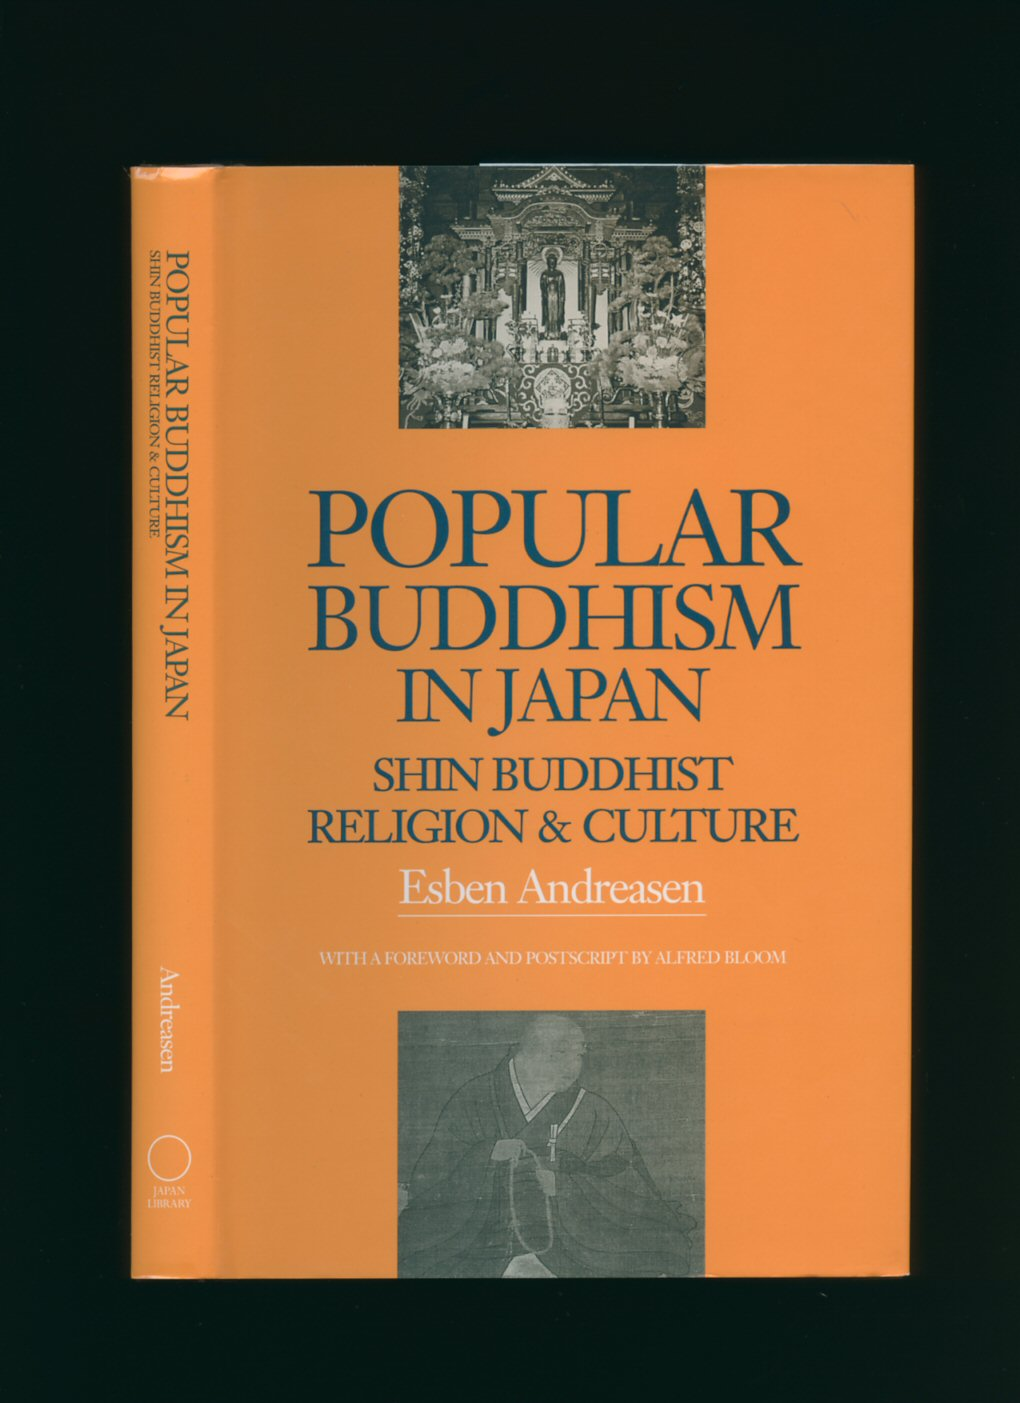 ANDREASEN, ESBEN [FOREWORD BY ALFRED BLOOM] - Popular Buddhism in Japan: Buddhist Religion & Culture: Shin Buddhist Religion and Culture